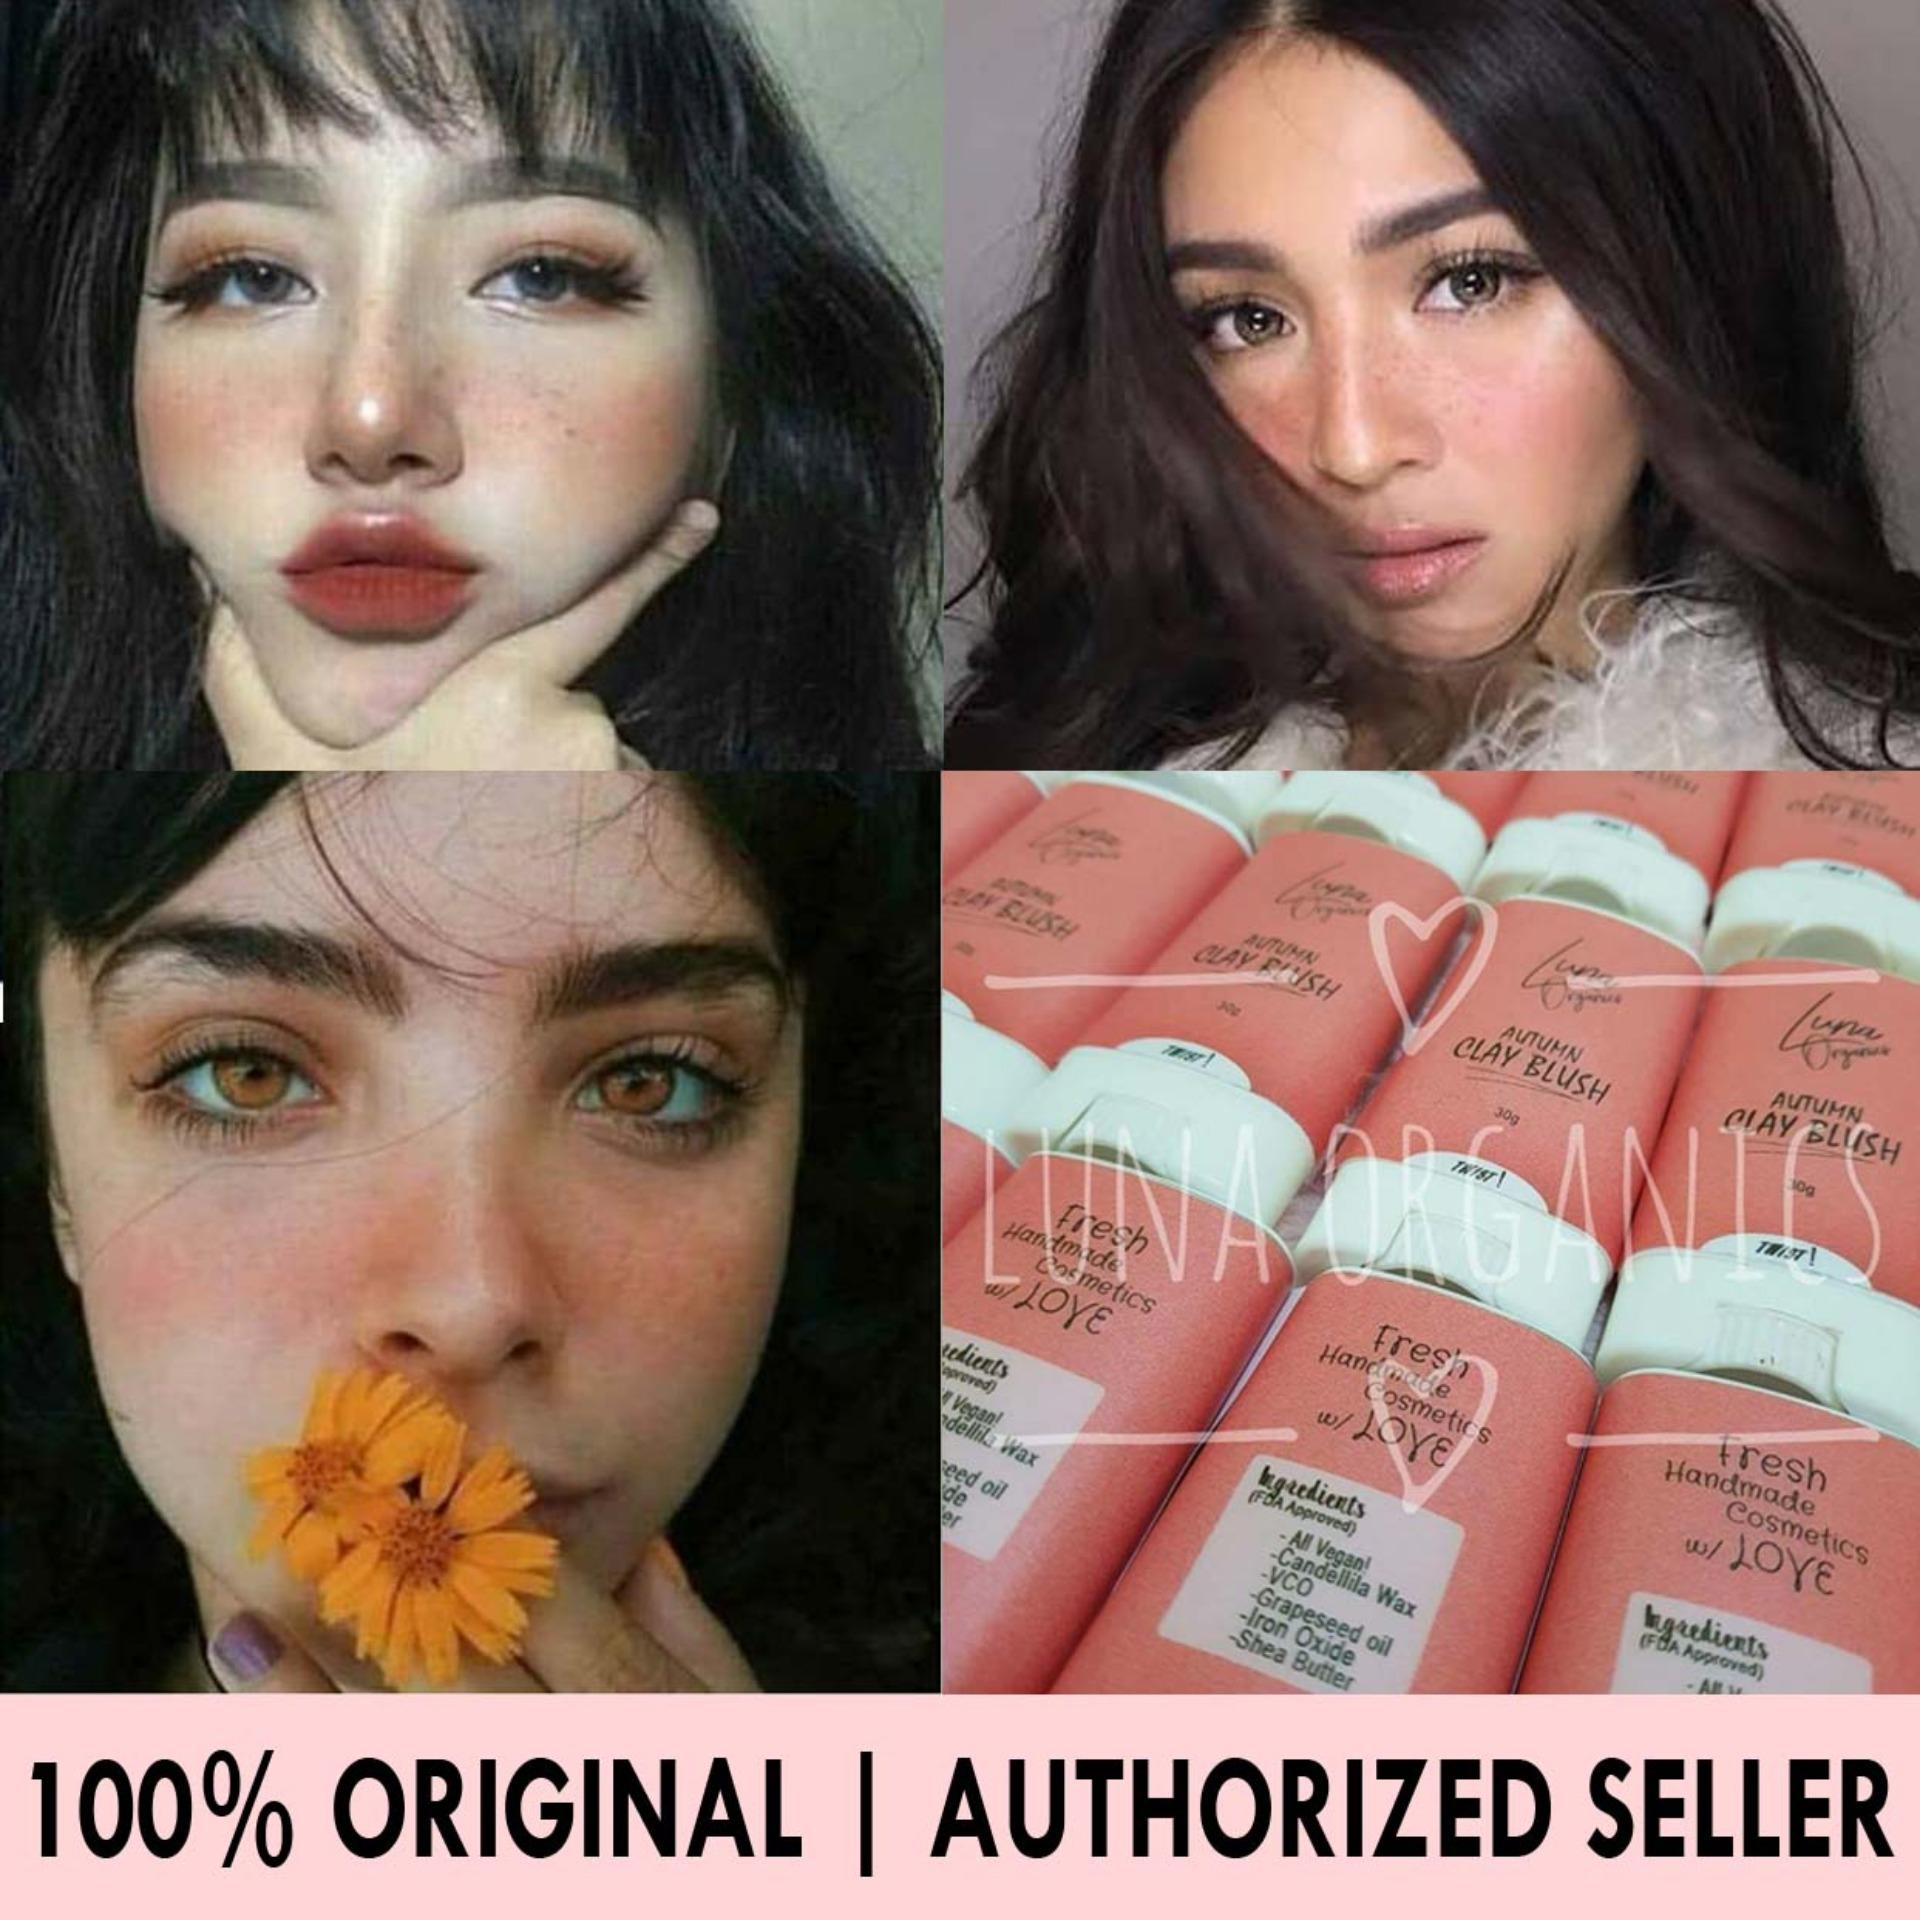 Authentic LUNA ORGANICS AUTUMN Clay Blush Shade 100% Original (Exclusive Authorized Product Distributor Taguig Area) FDA Approved Vegan Korean Make Up Dewy Look Highly Pigmented 30grams Philippines